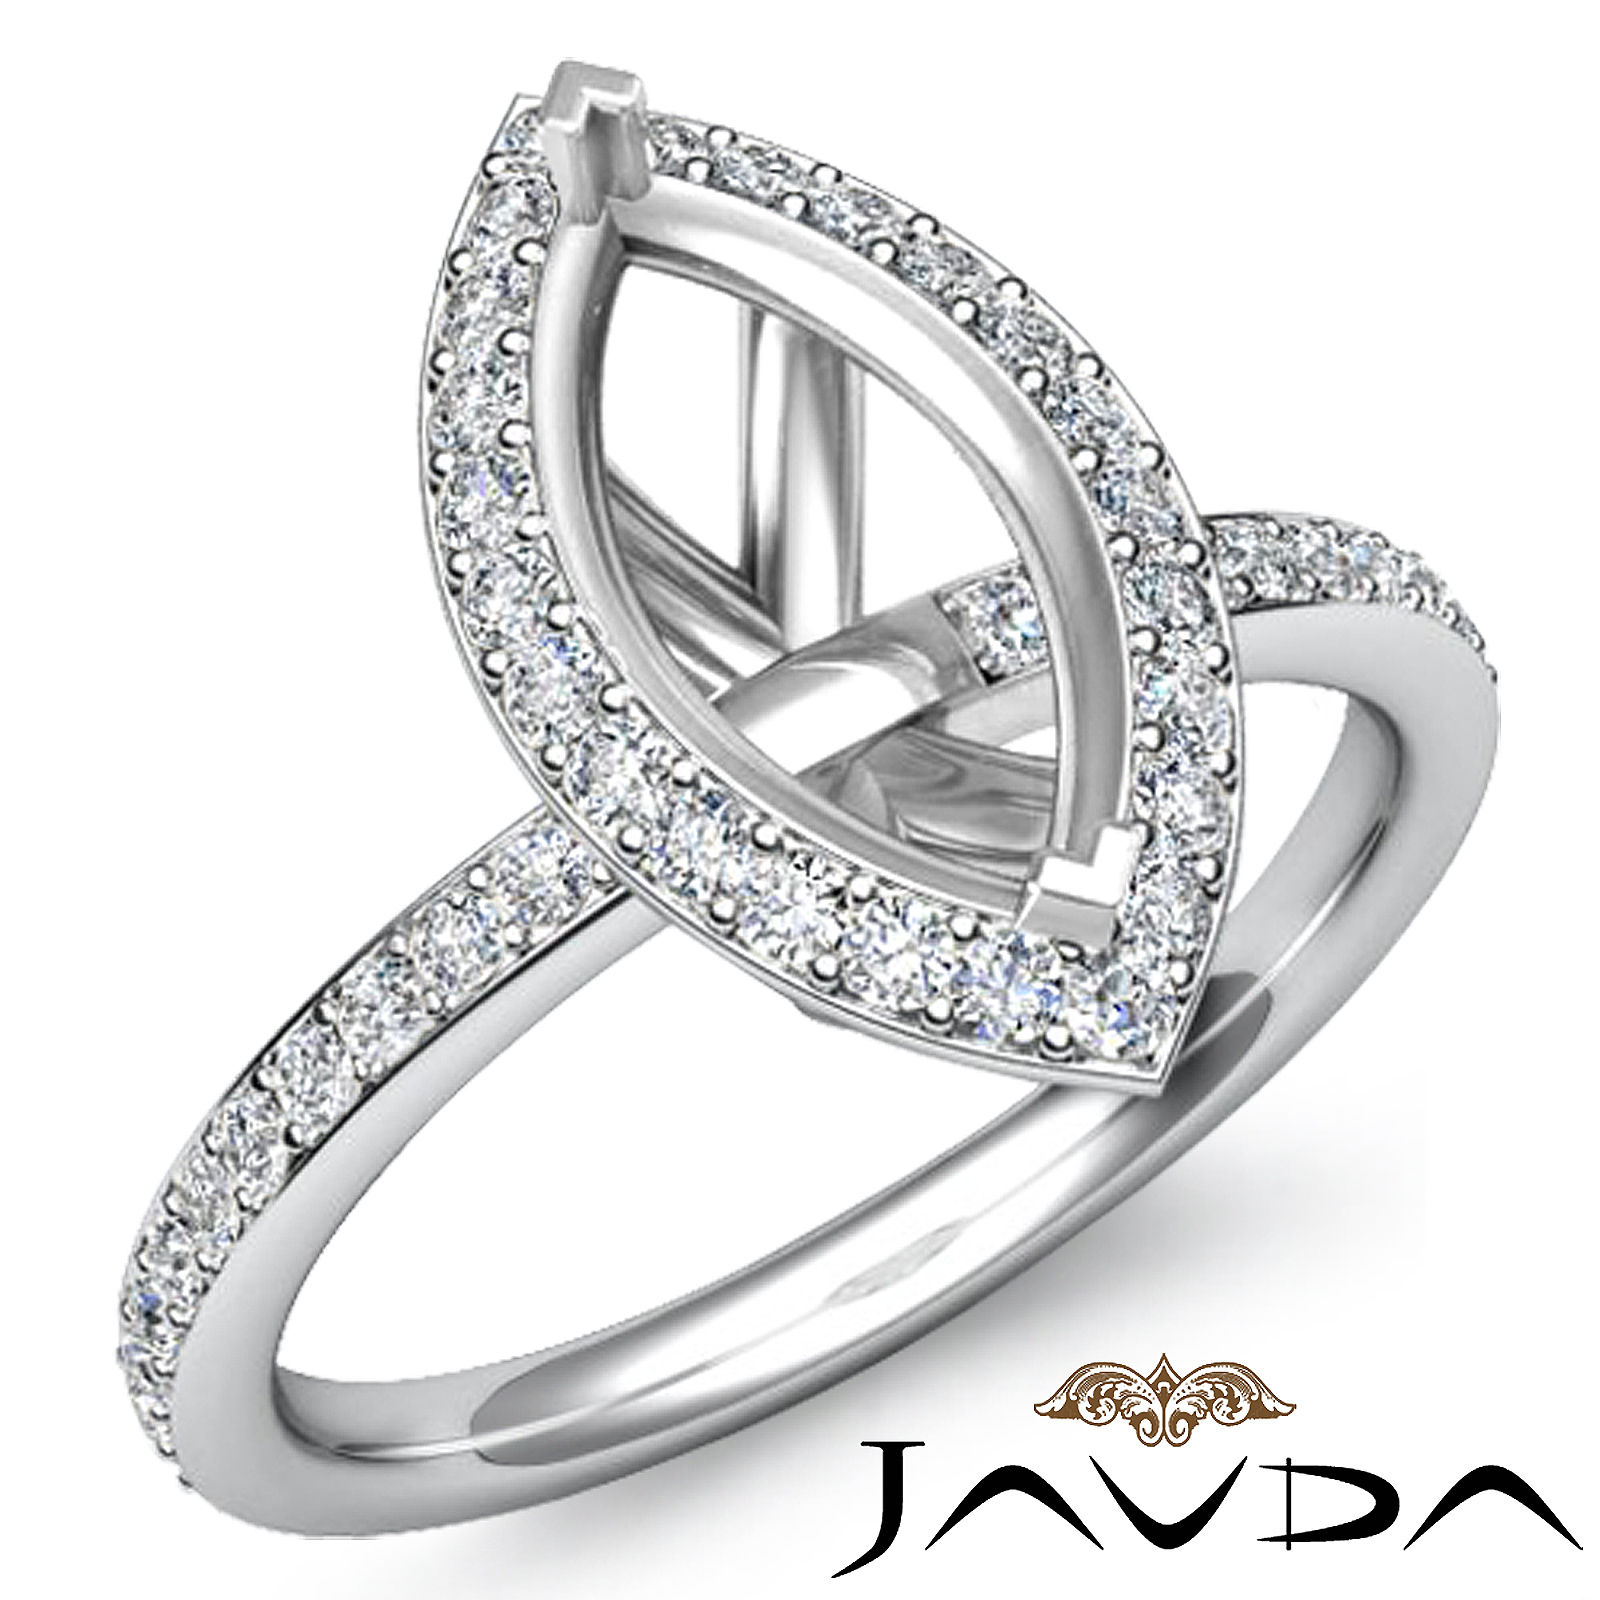 diamond engagement marquise shape ring platinum 950 halo. Black Bedroom Furniture Sets. Home Design Ideas